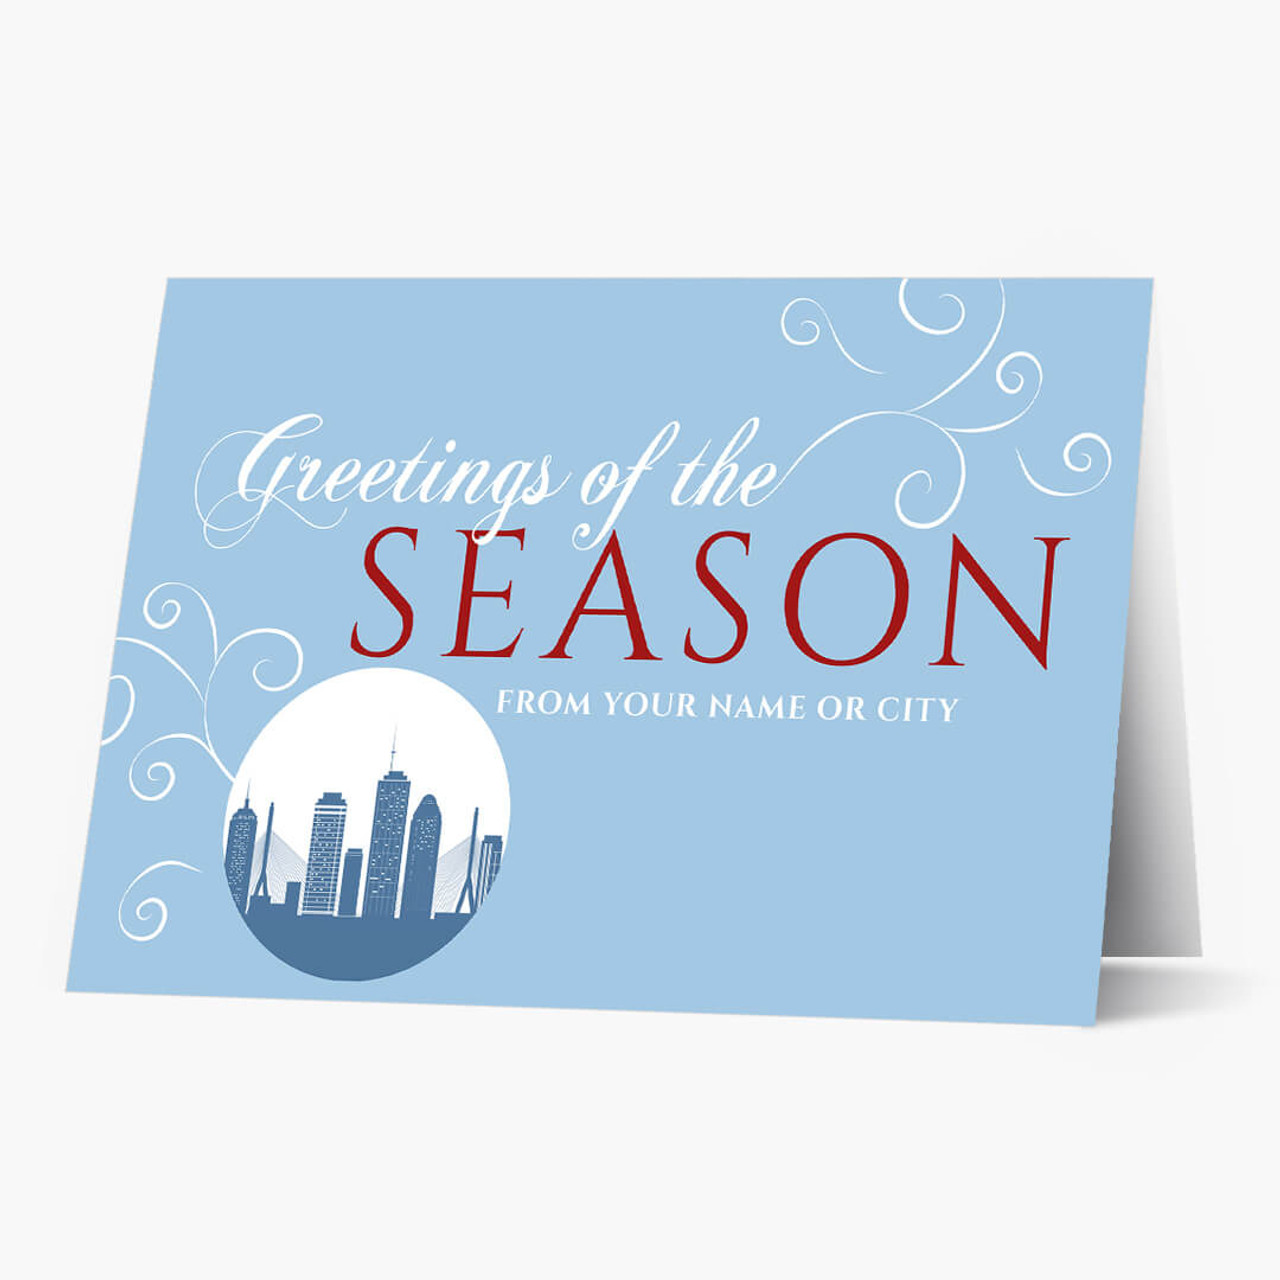 A Boston Greeting Christmas Card